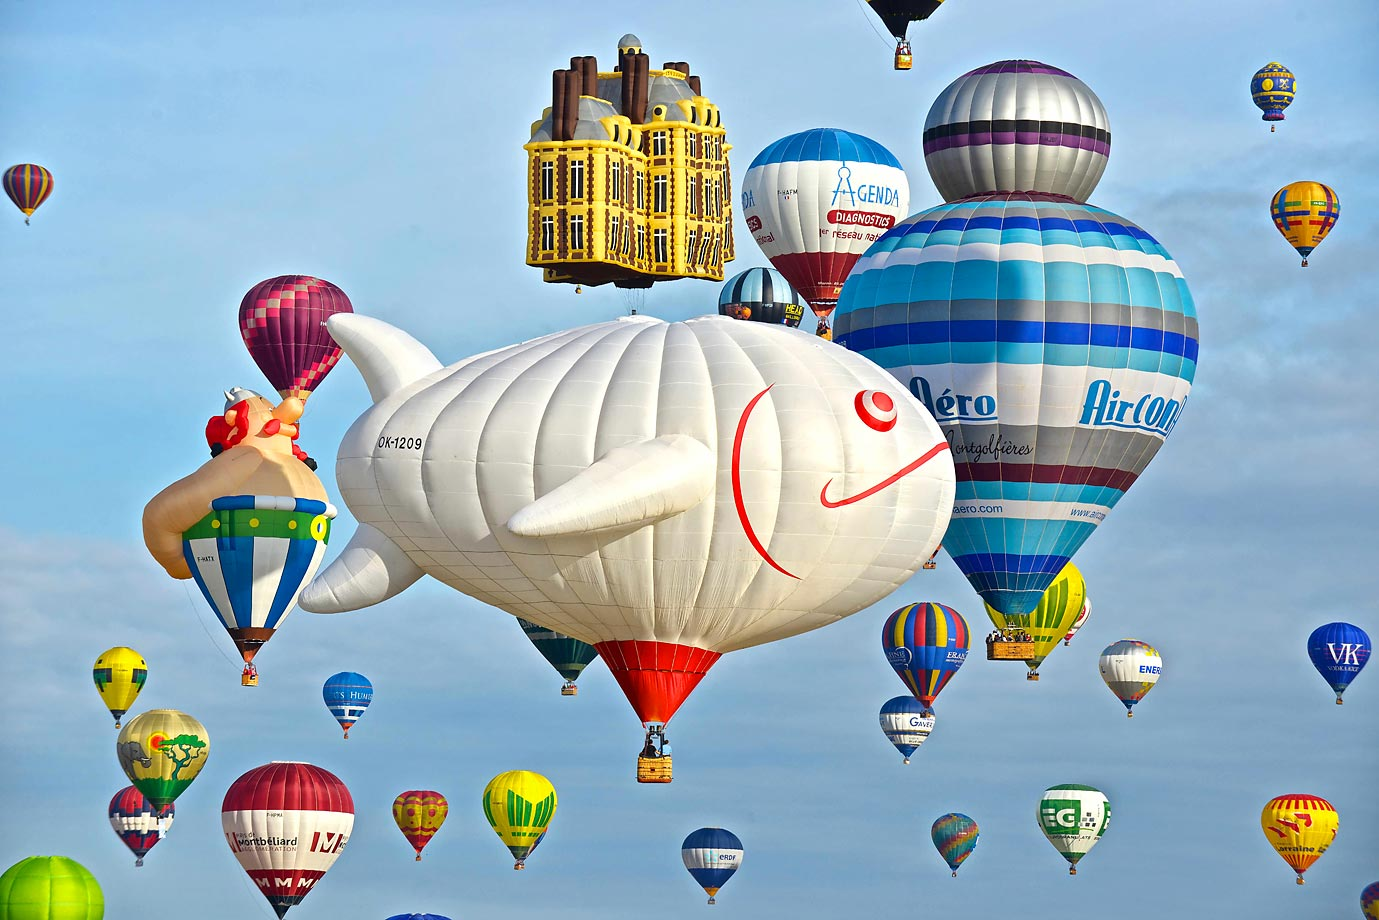 View of the Mondial Air Balloon event in France.